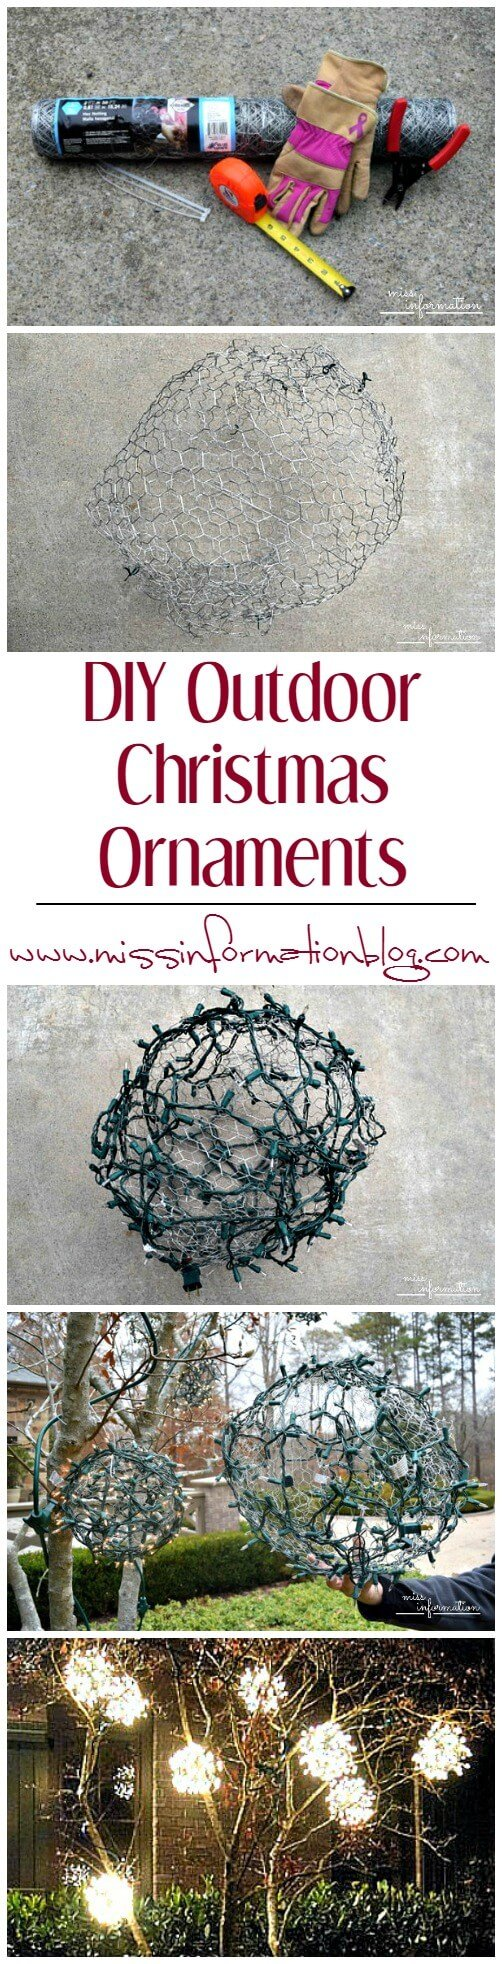 These inexpensive DIY Christmas Ornaments are easy to make. You can hang them in tree's or around your yard to brighten up your outdoor Christmas display